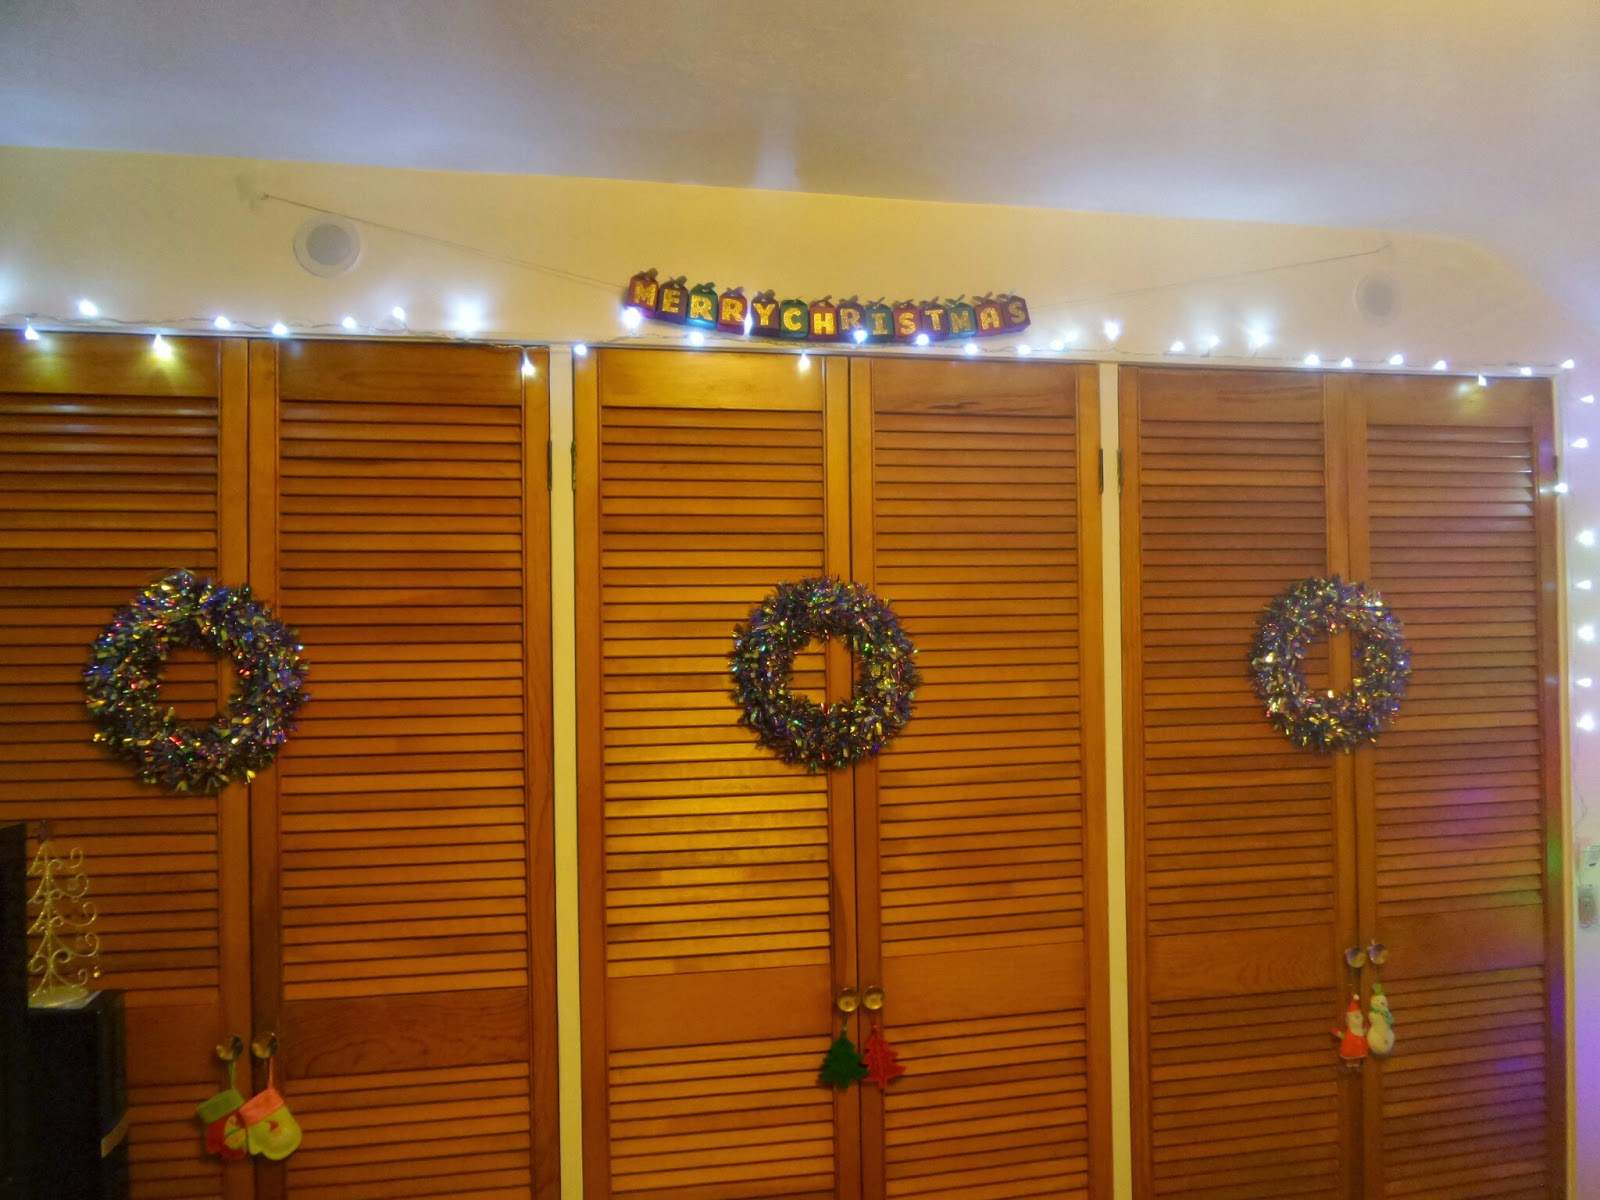 Christmas made over wardrobe doors